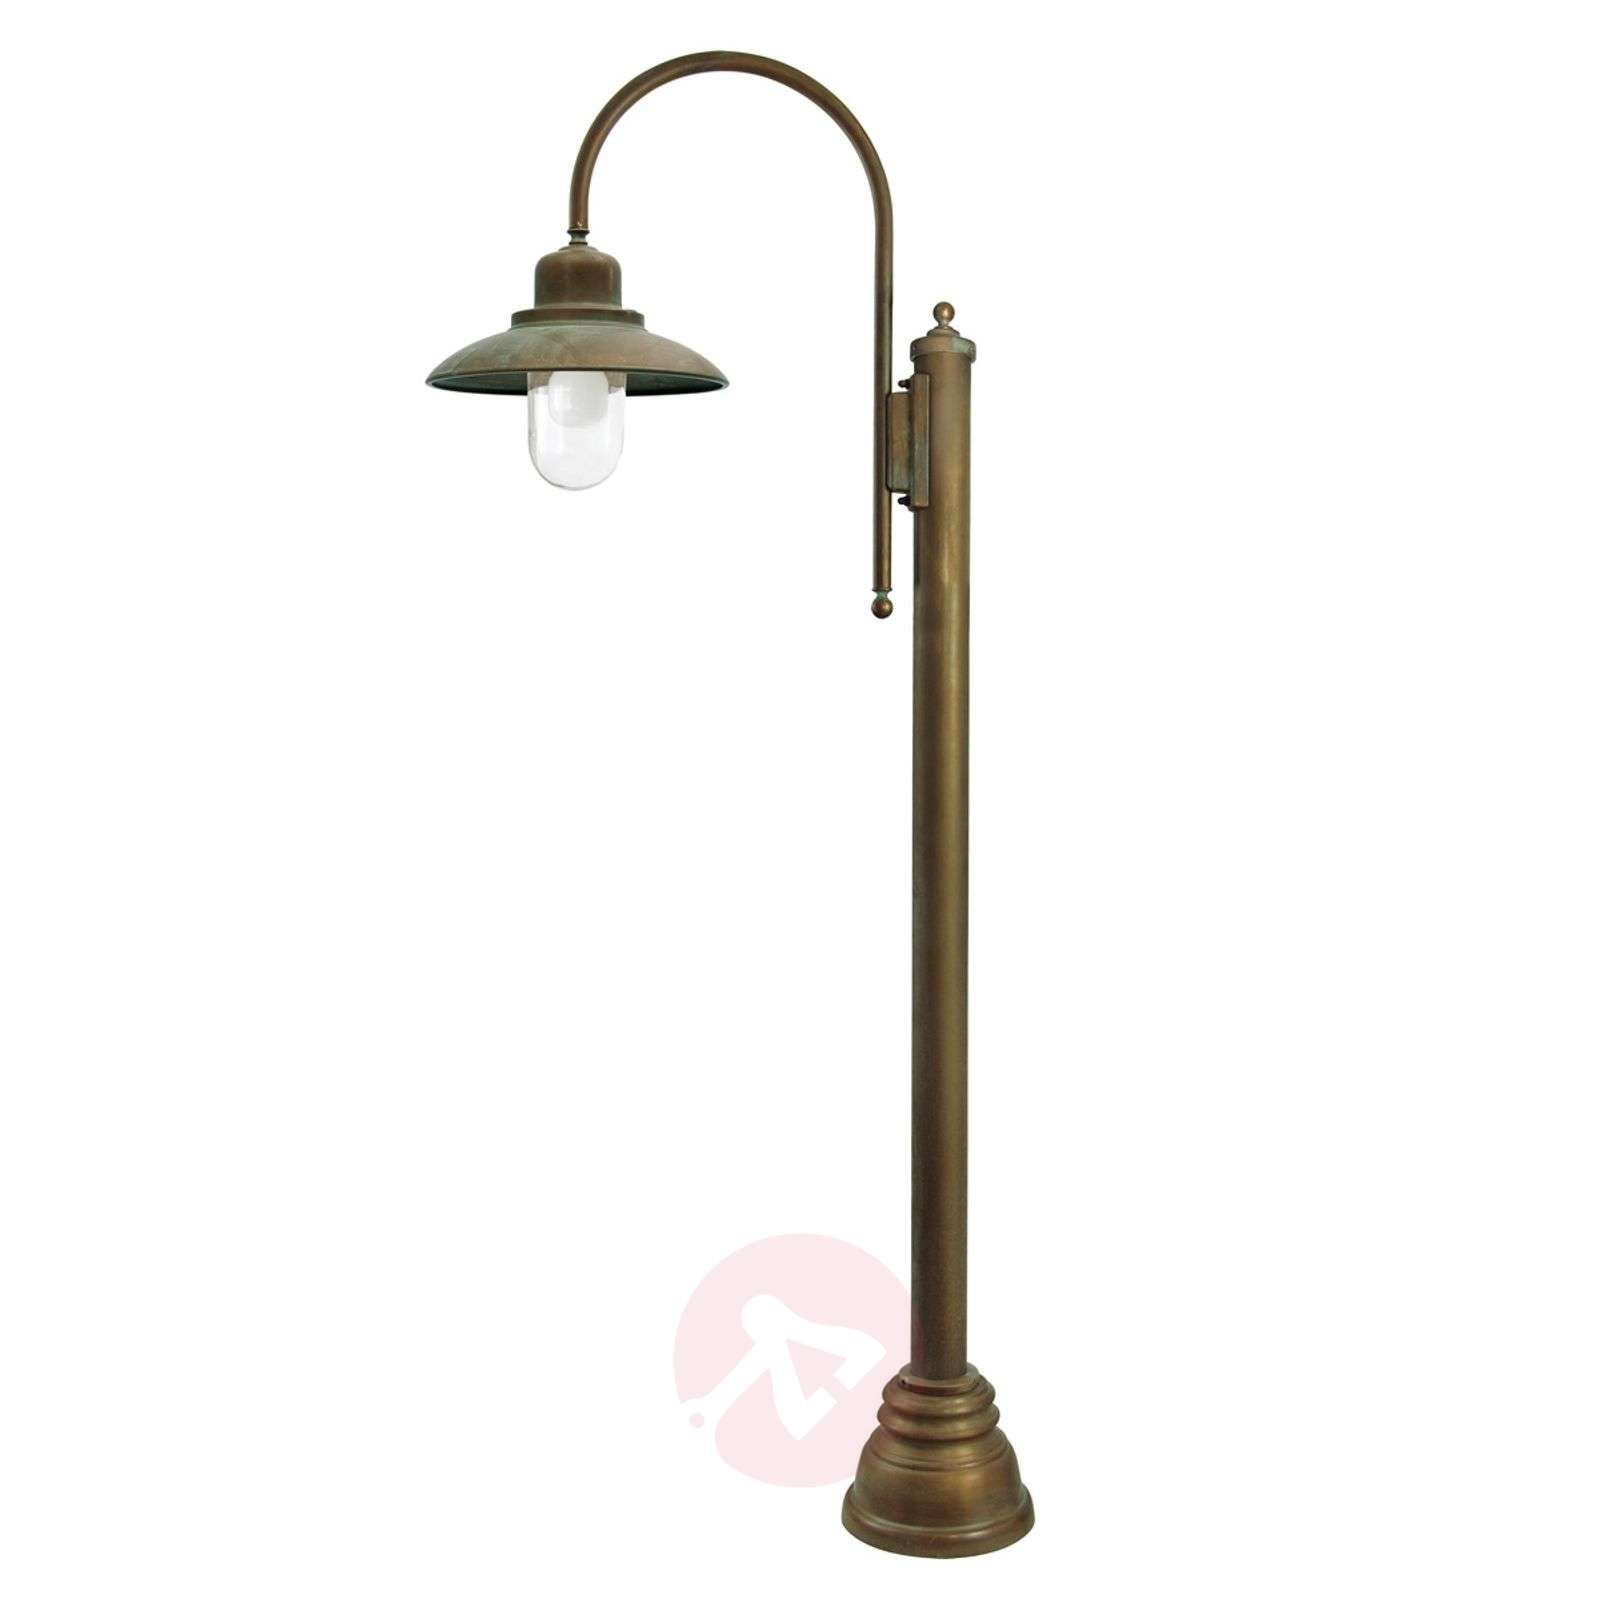 Casale large path light 155 cm with charm-6515290-01